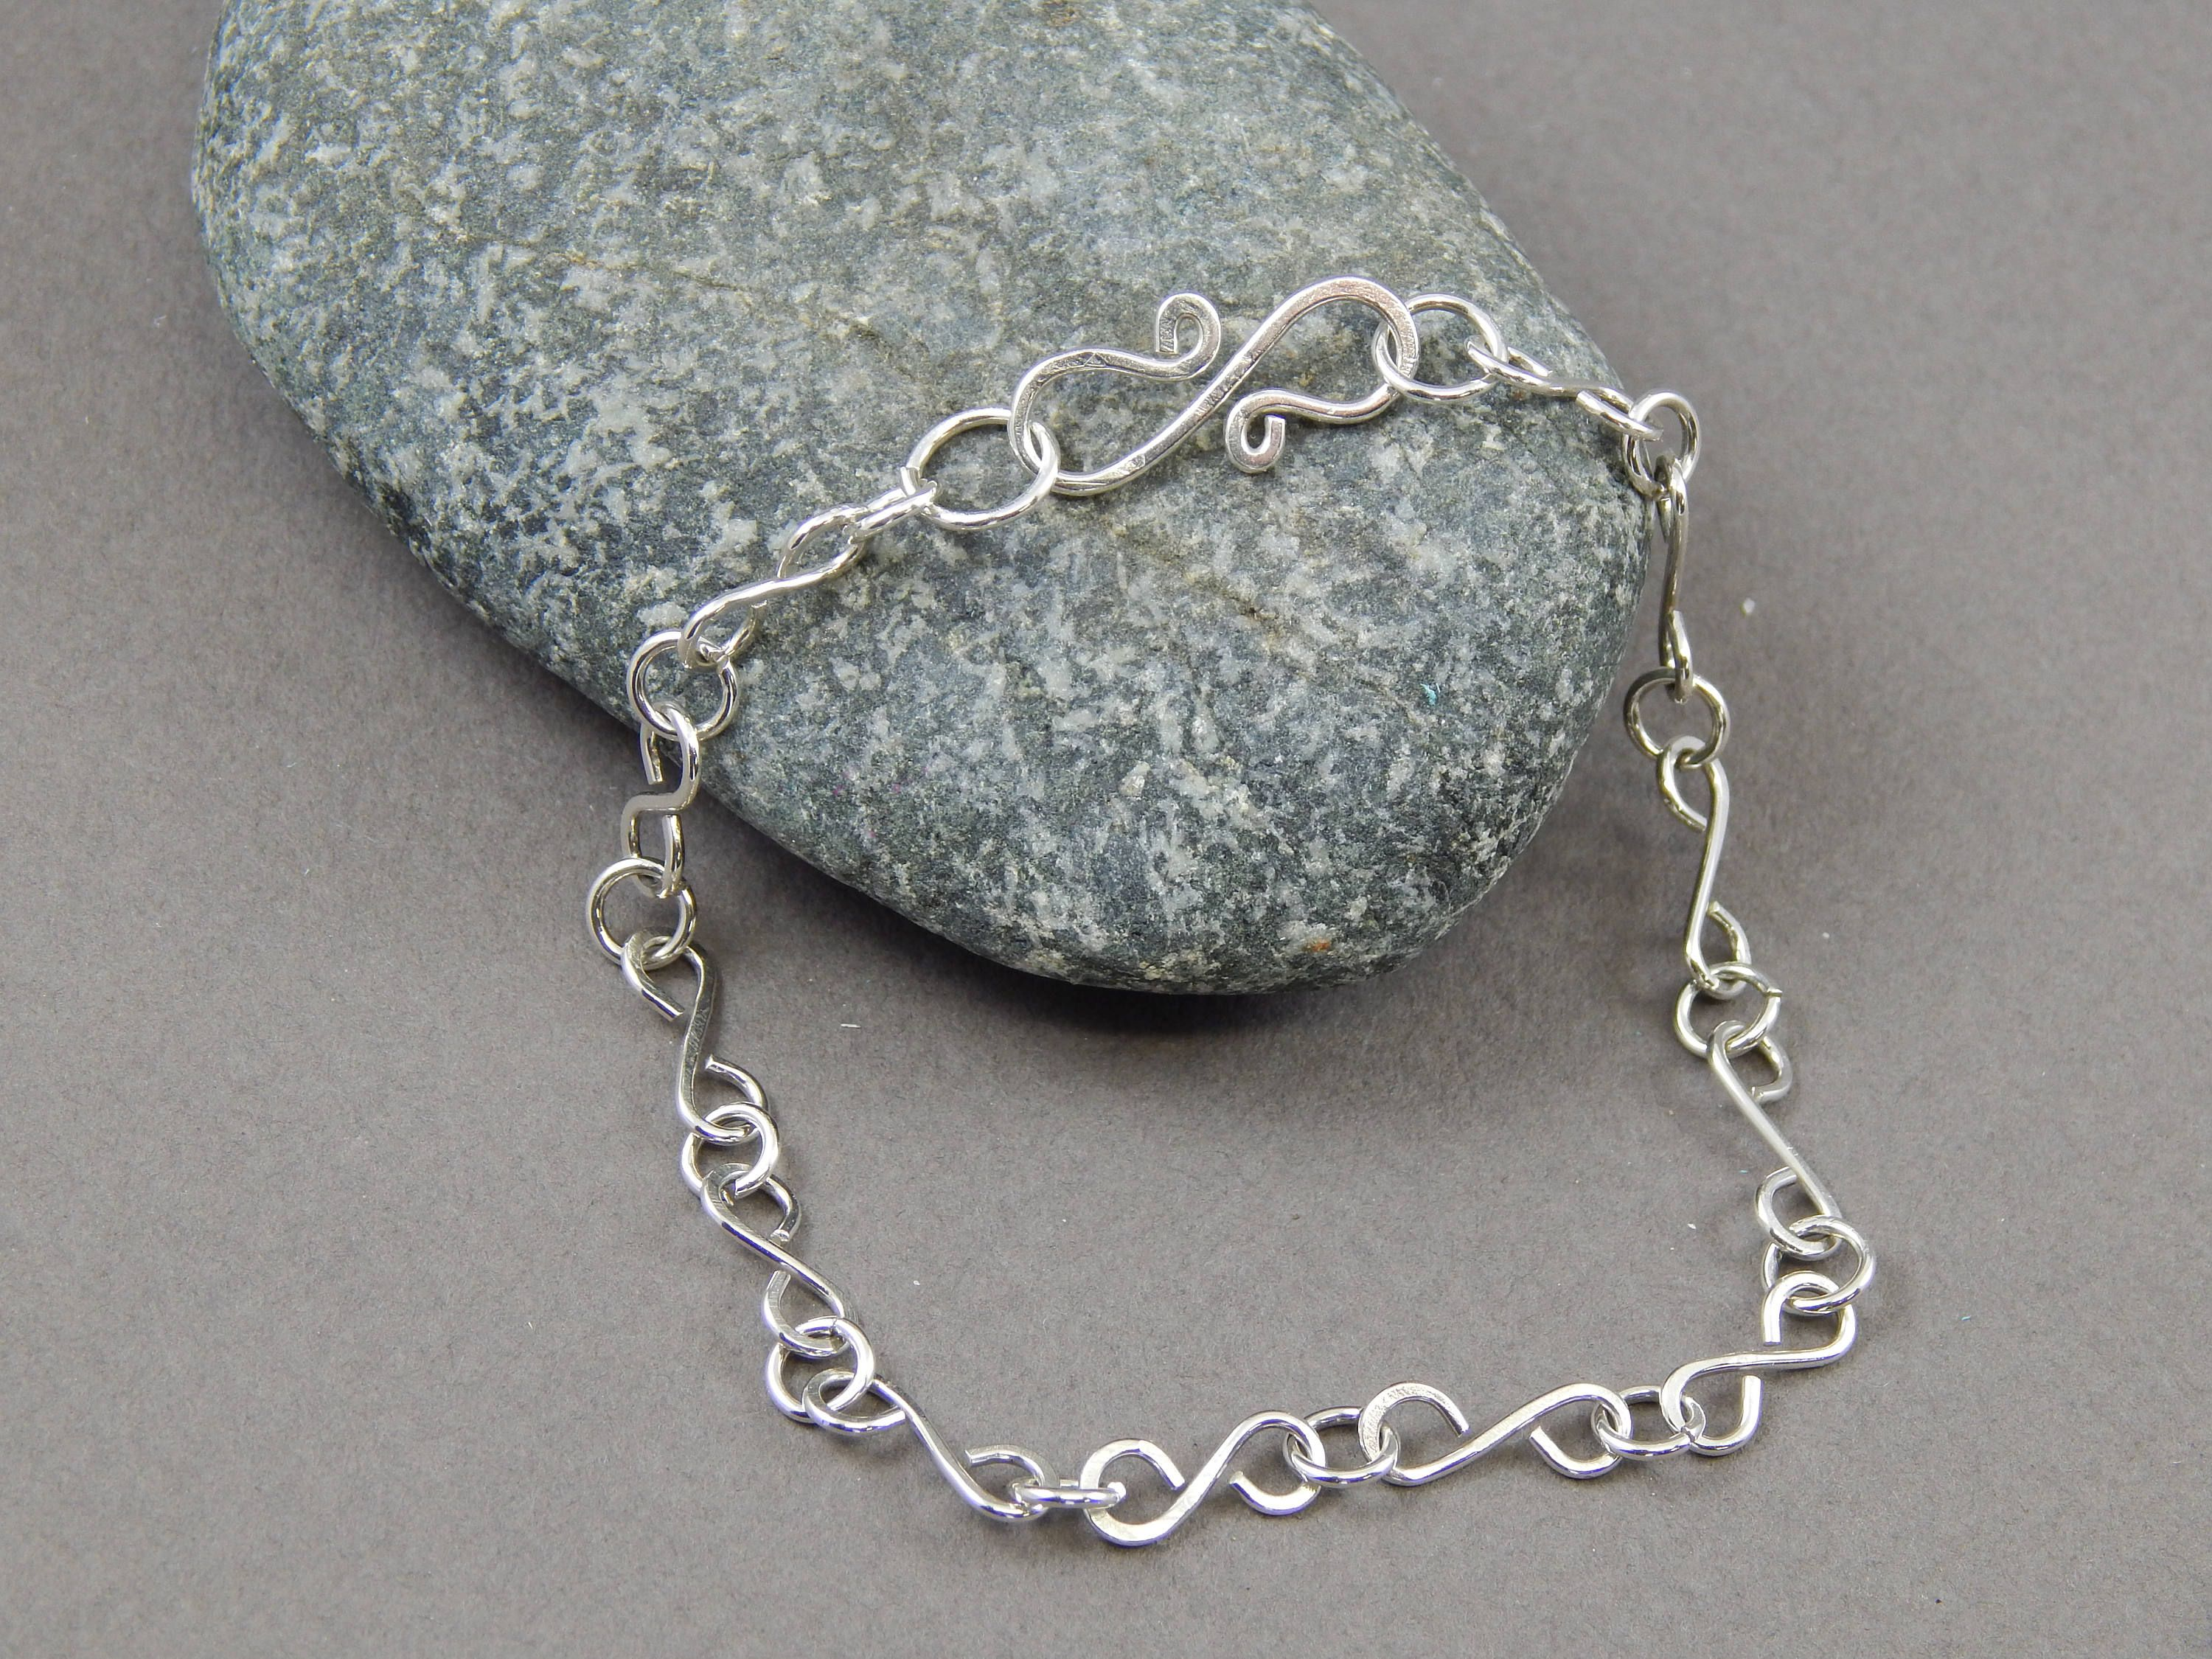 filigree rf product bracelet handmade made artisan bracelets heart sterling category silver b